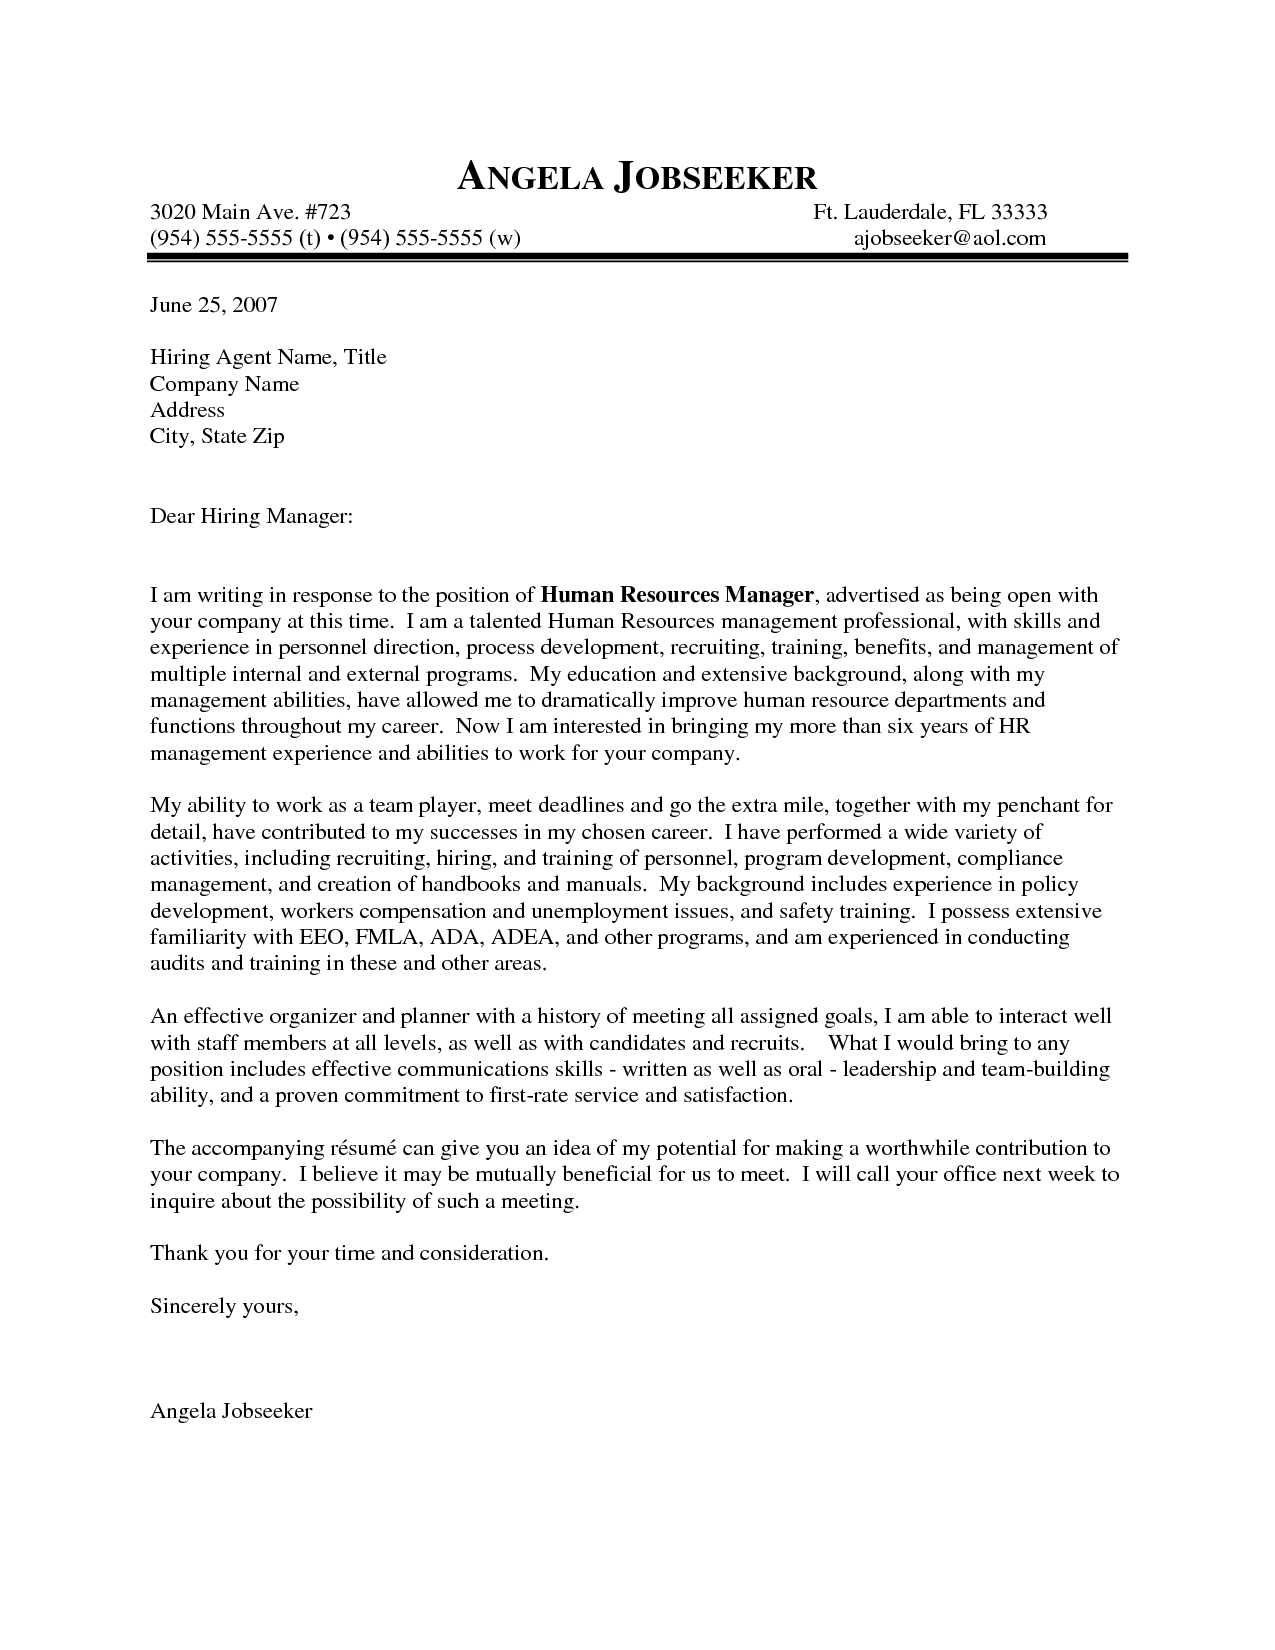 Outstanding cover letter examples hr manager cover letter example outstanding cover letter examples hr manager cover letter example altavistaventures Image collections